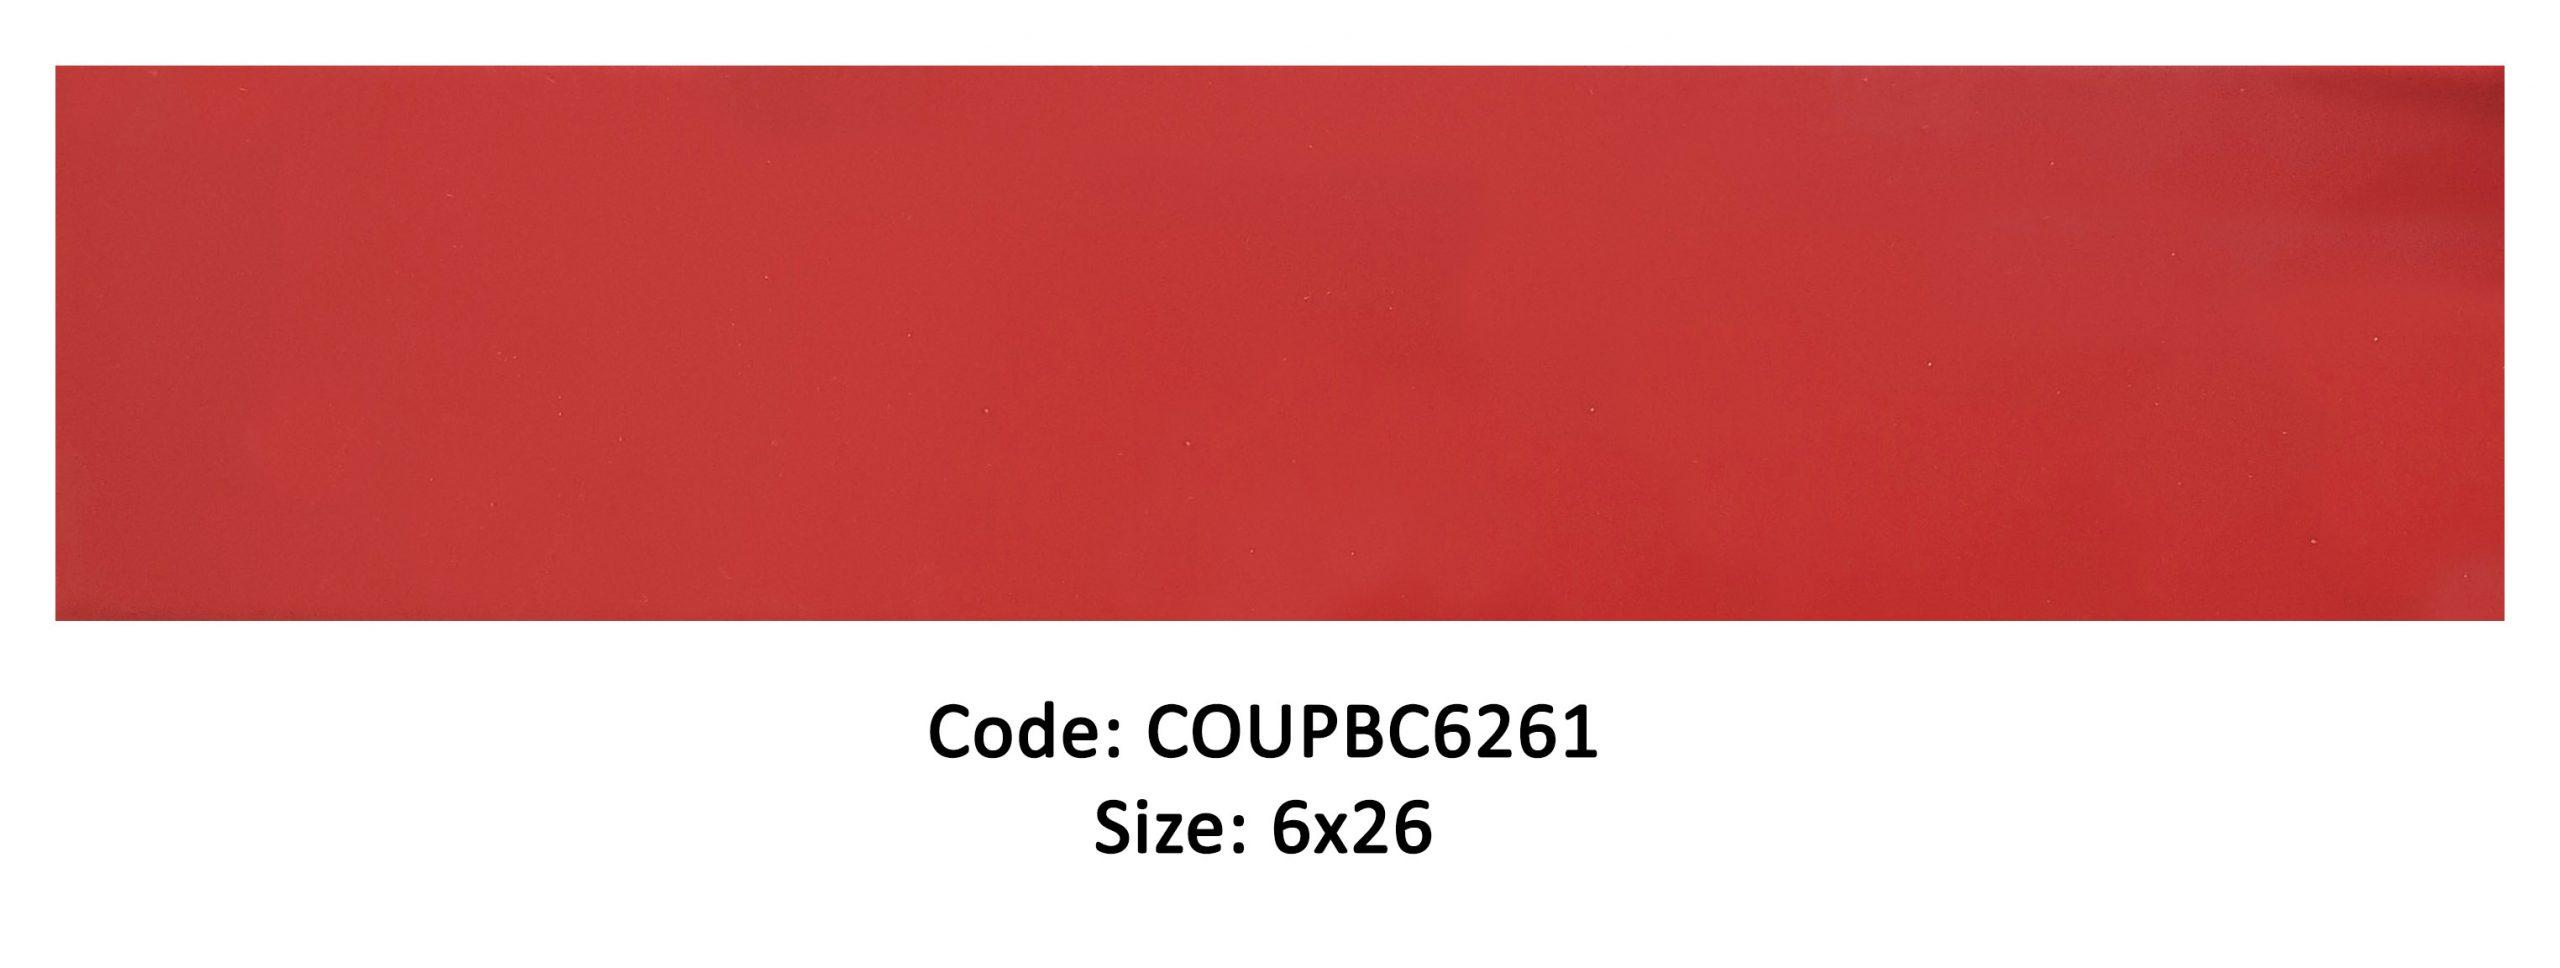 AMAZ COUPBC6261 – Burnt Orange Subway Tile